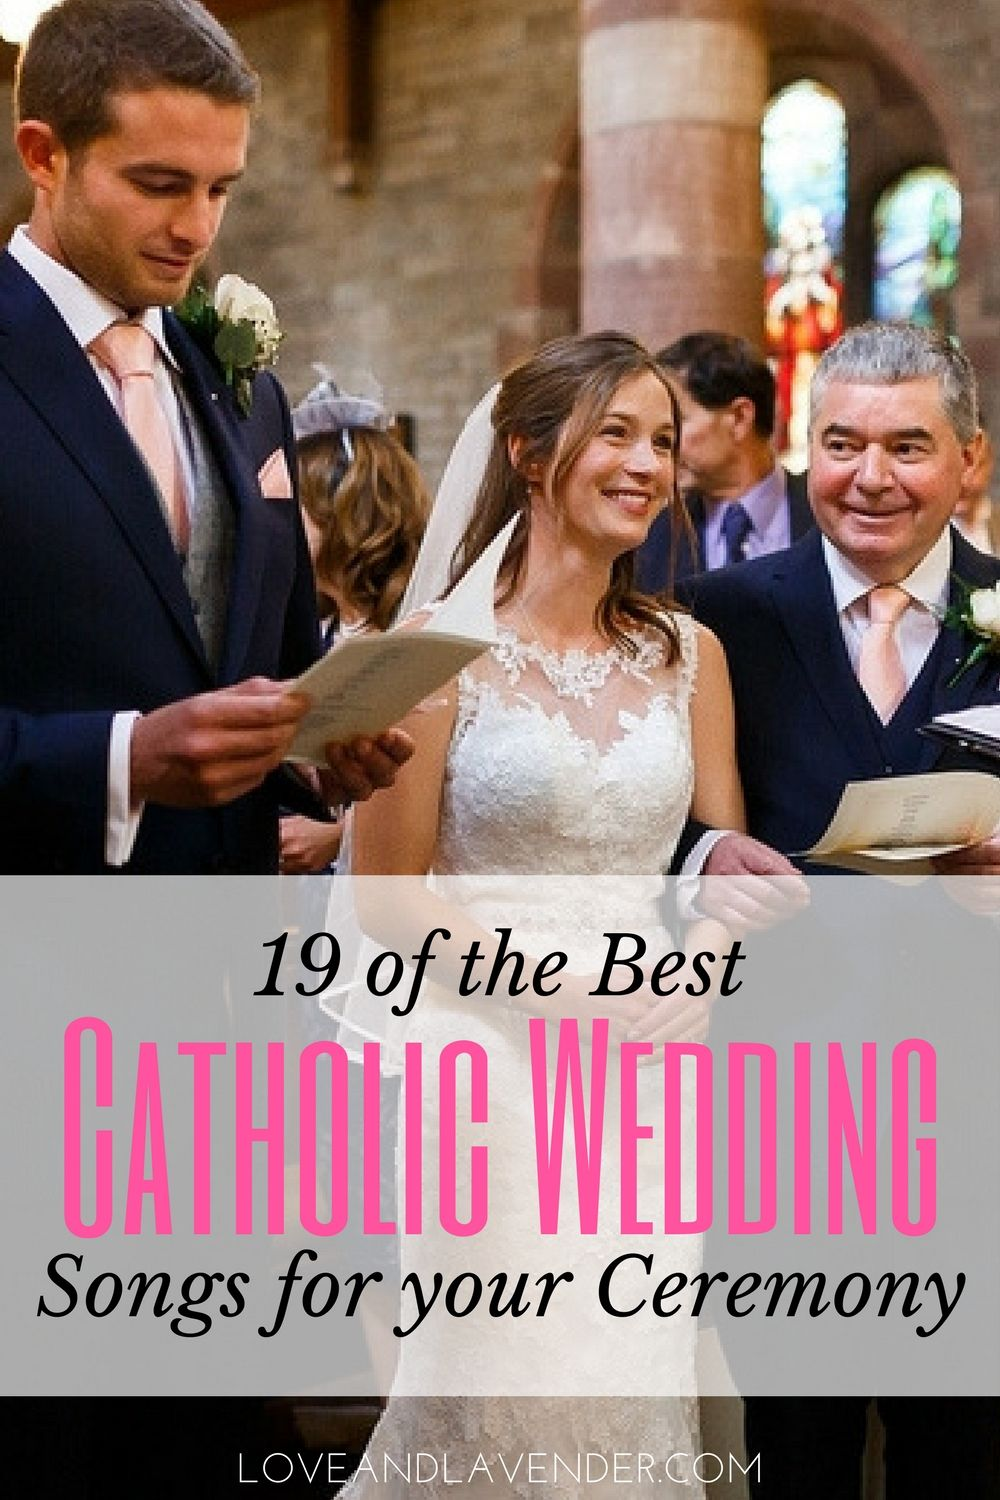 Catholic Songs For A Wedding Ceremony In 2020 Catholic Wedding Songs Wedding Songs Songs